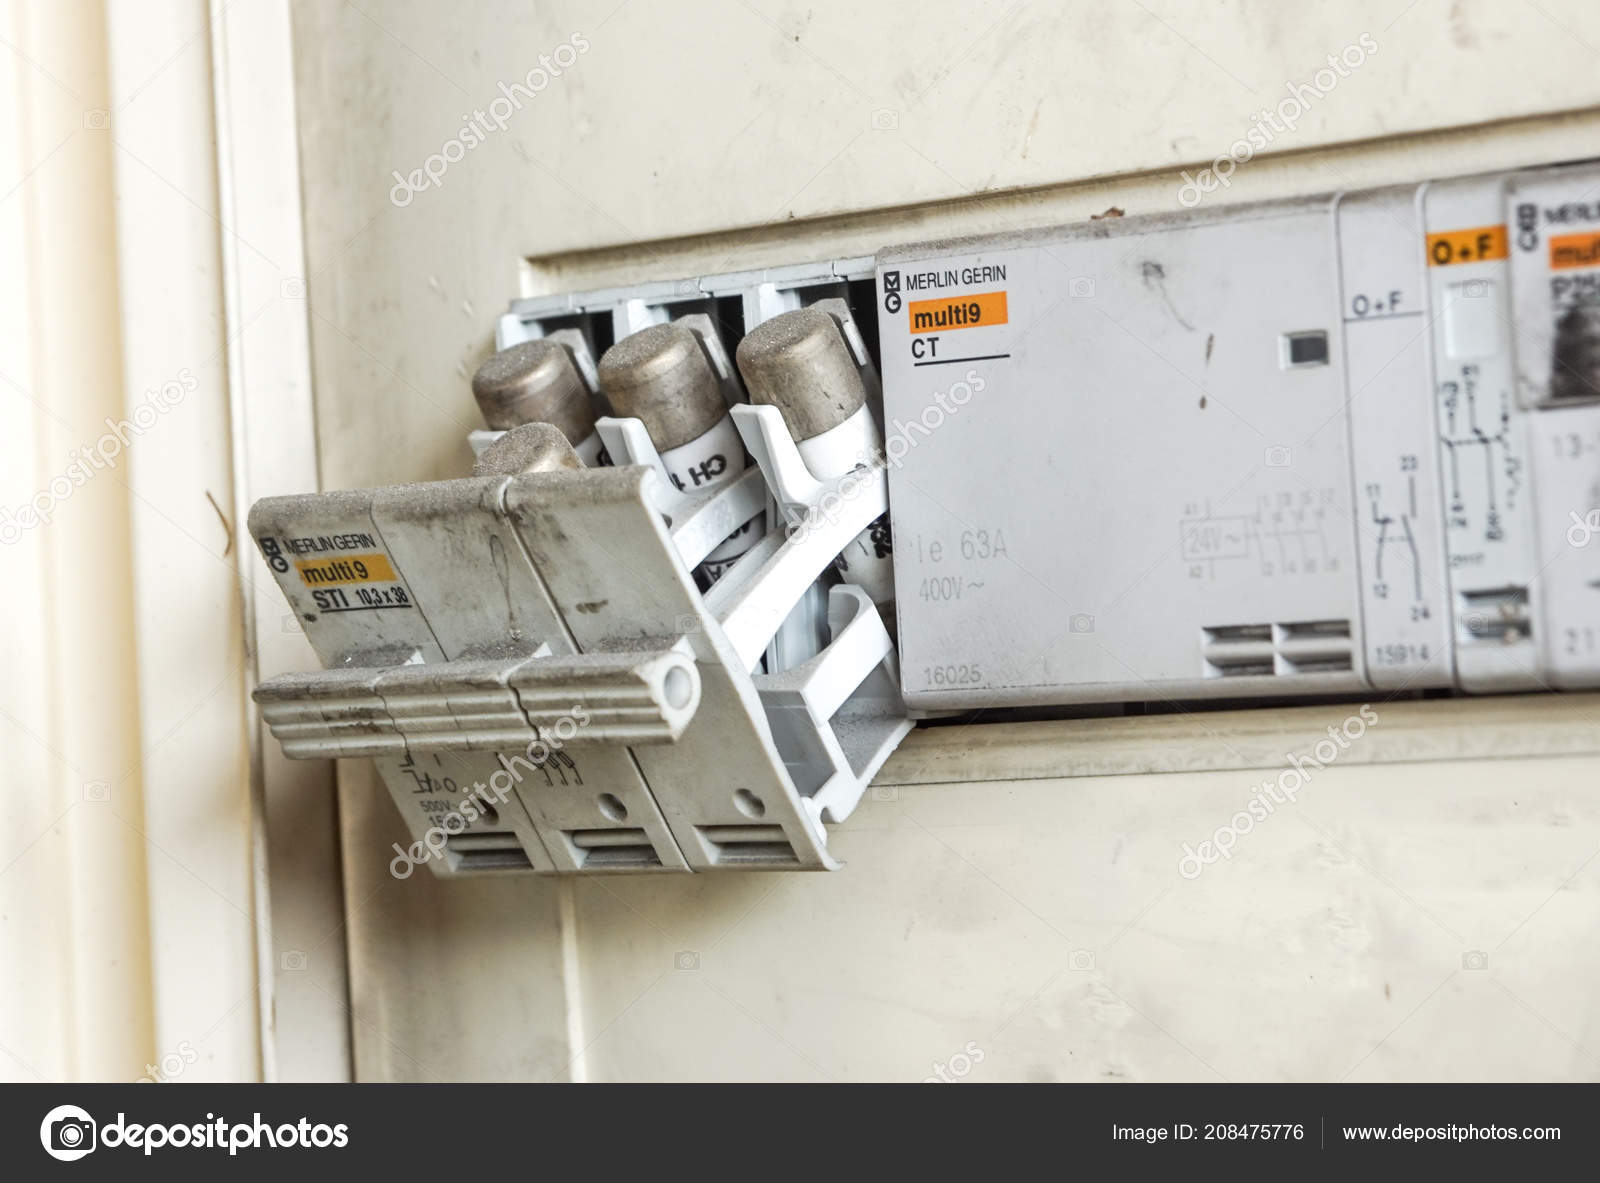 30 Old Fuse Box   Wiring Diagram Old Home Fuse Box on old home antenna, old home generator, old home gas tank, old home front door,